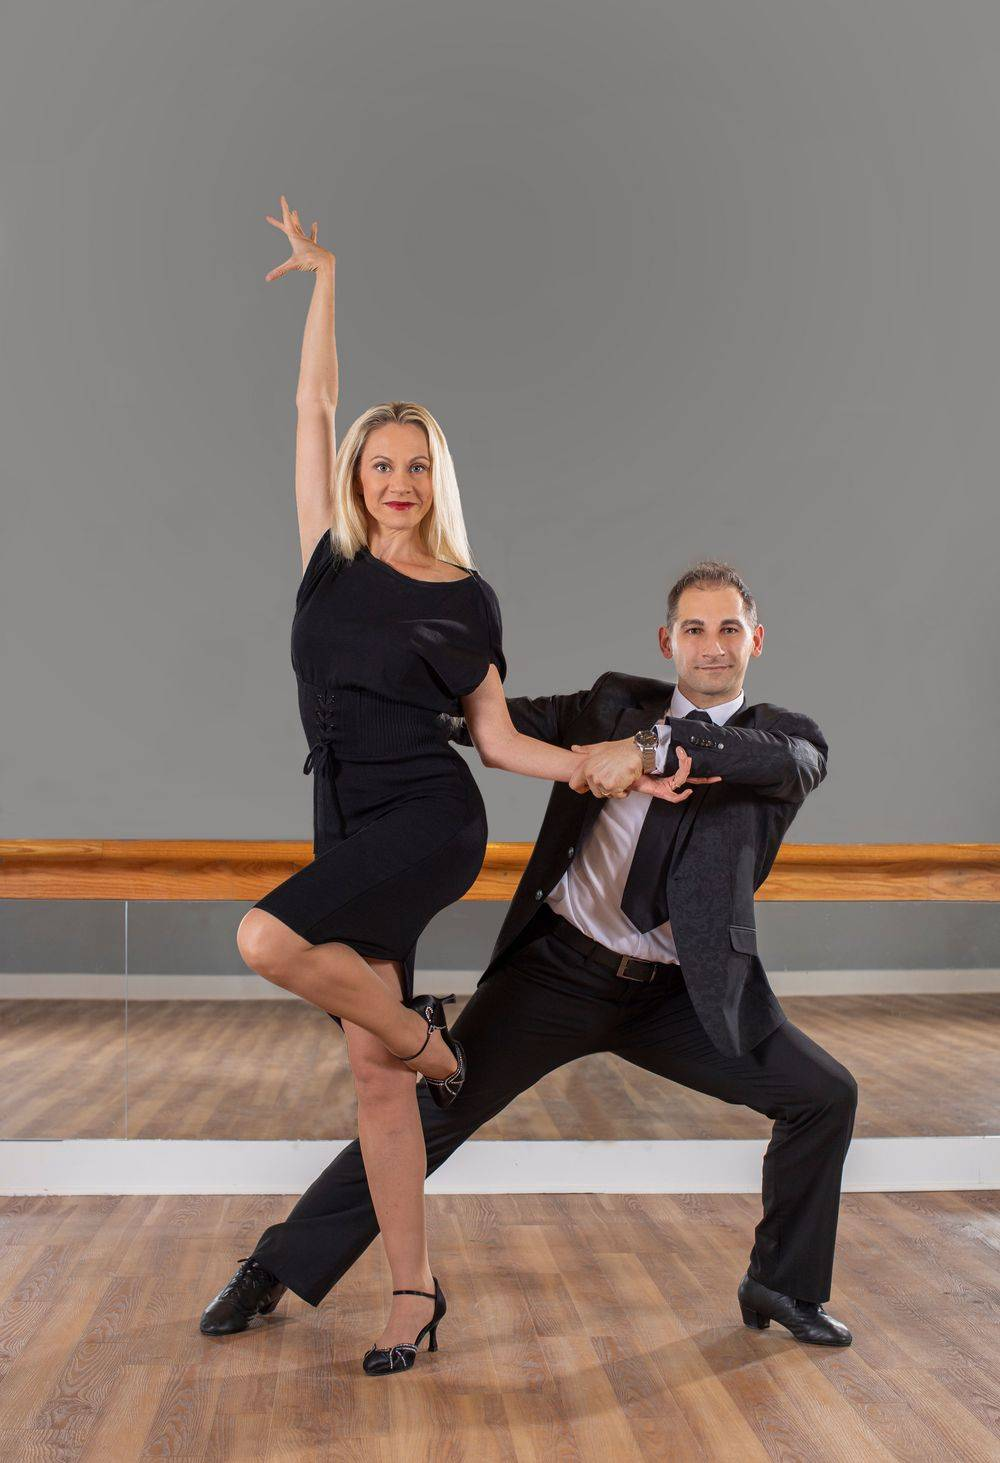 dance studio tampa, ballroom latin dancing classes, dance lessons